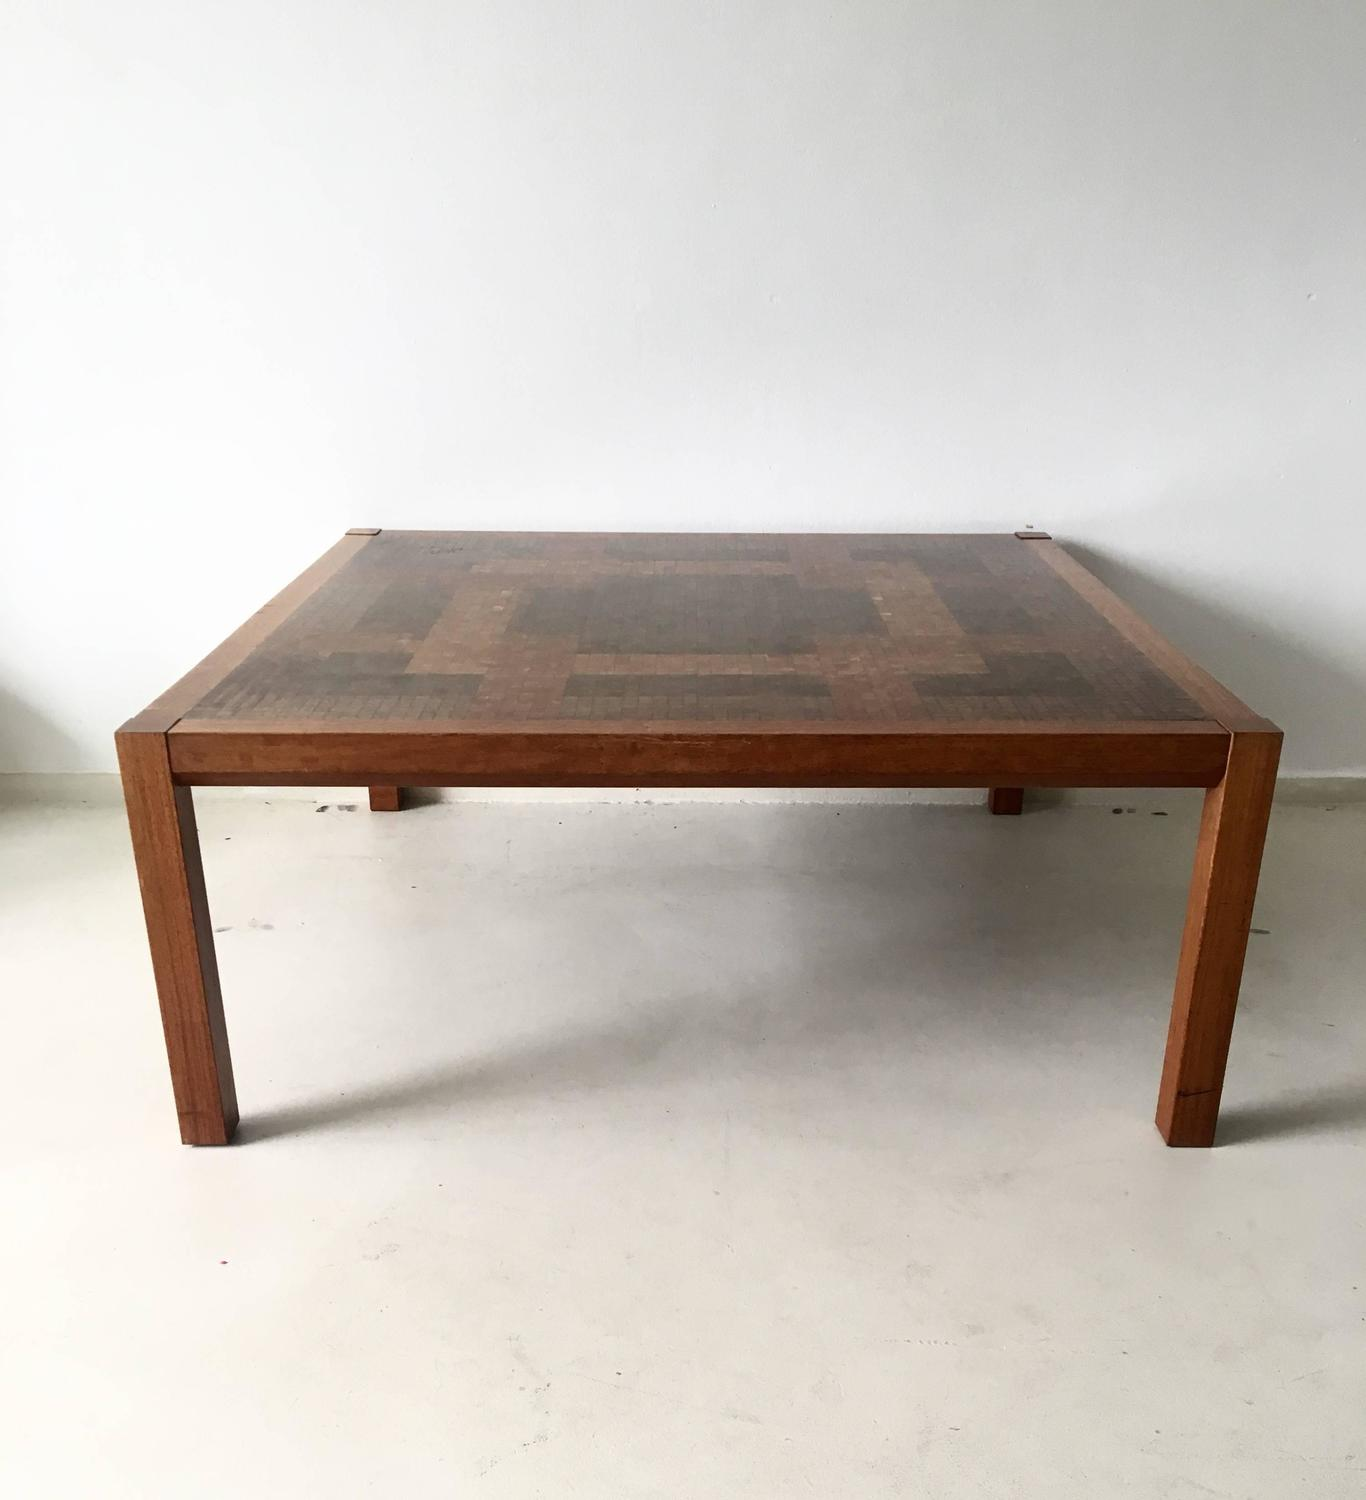 Danish Design Coffee Table By Tranekaer 1970s For Sale At 1stdibs